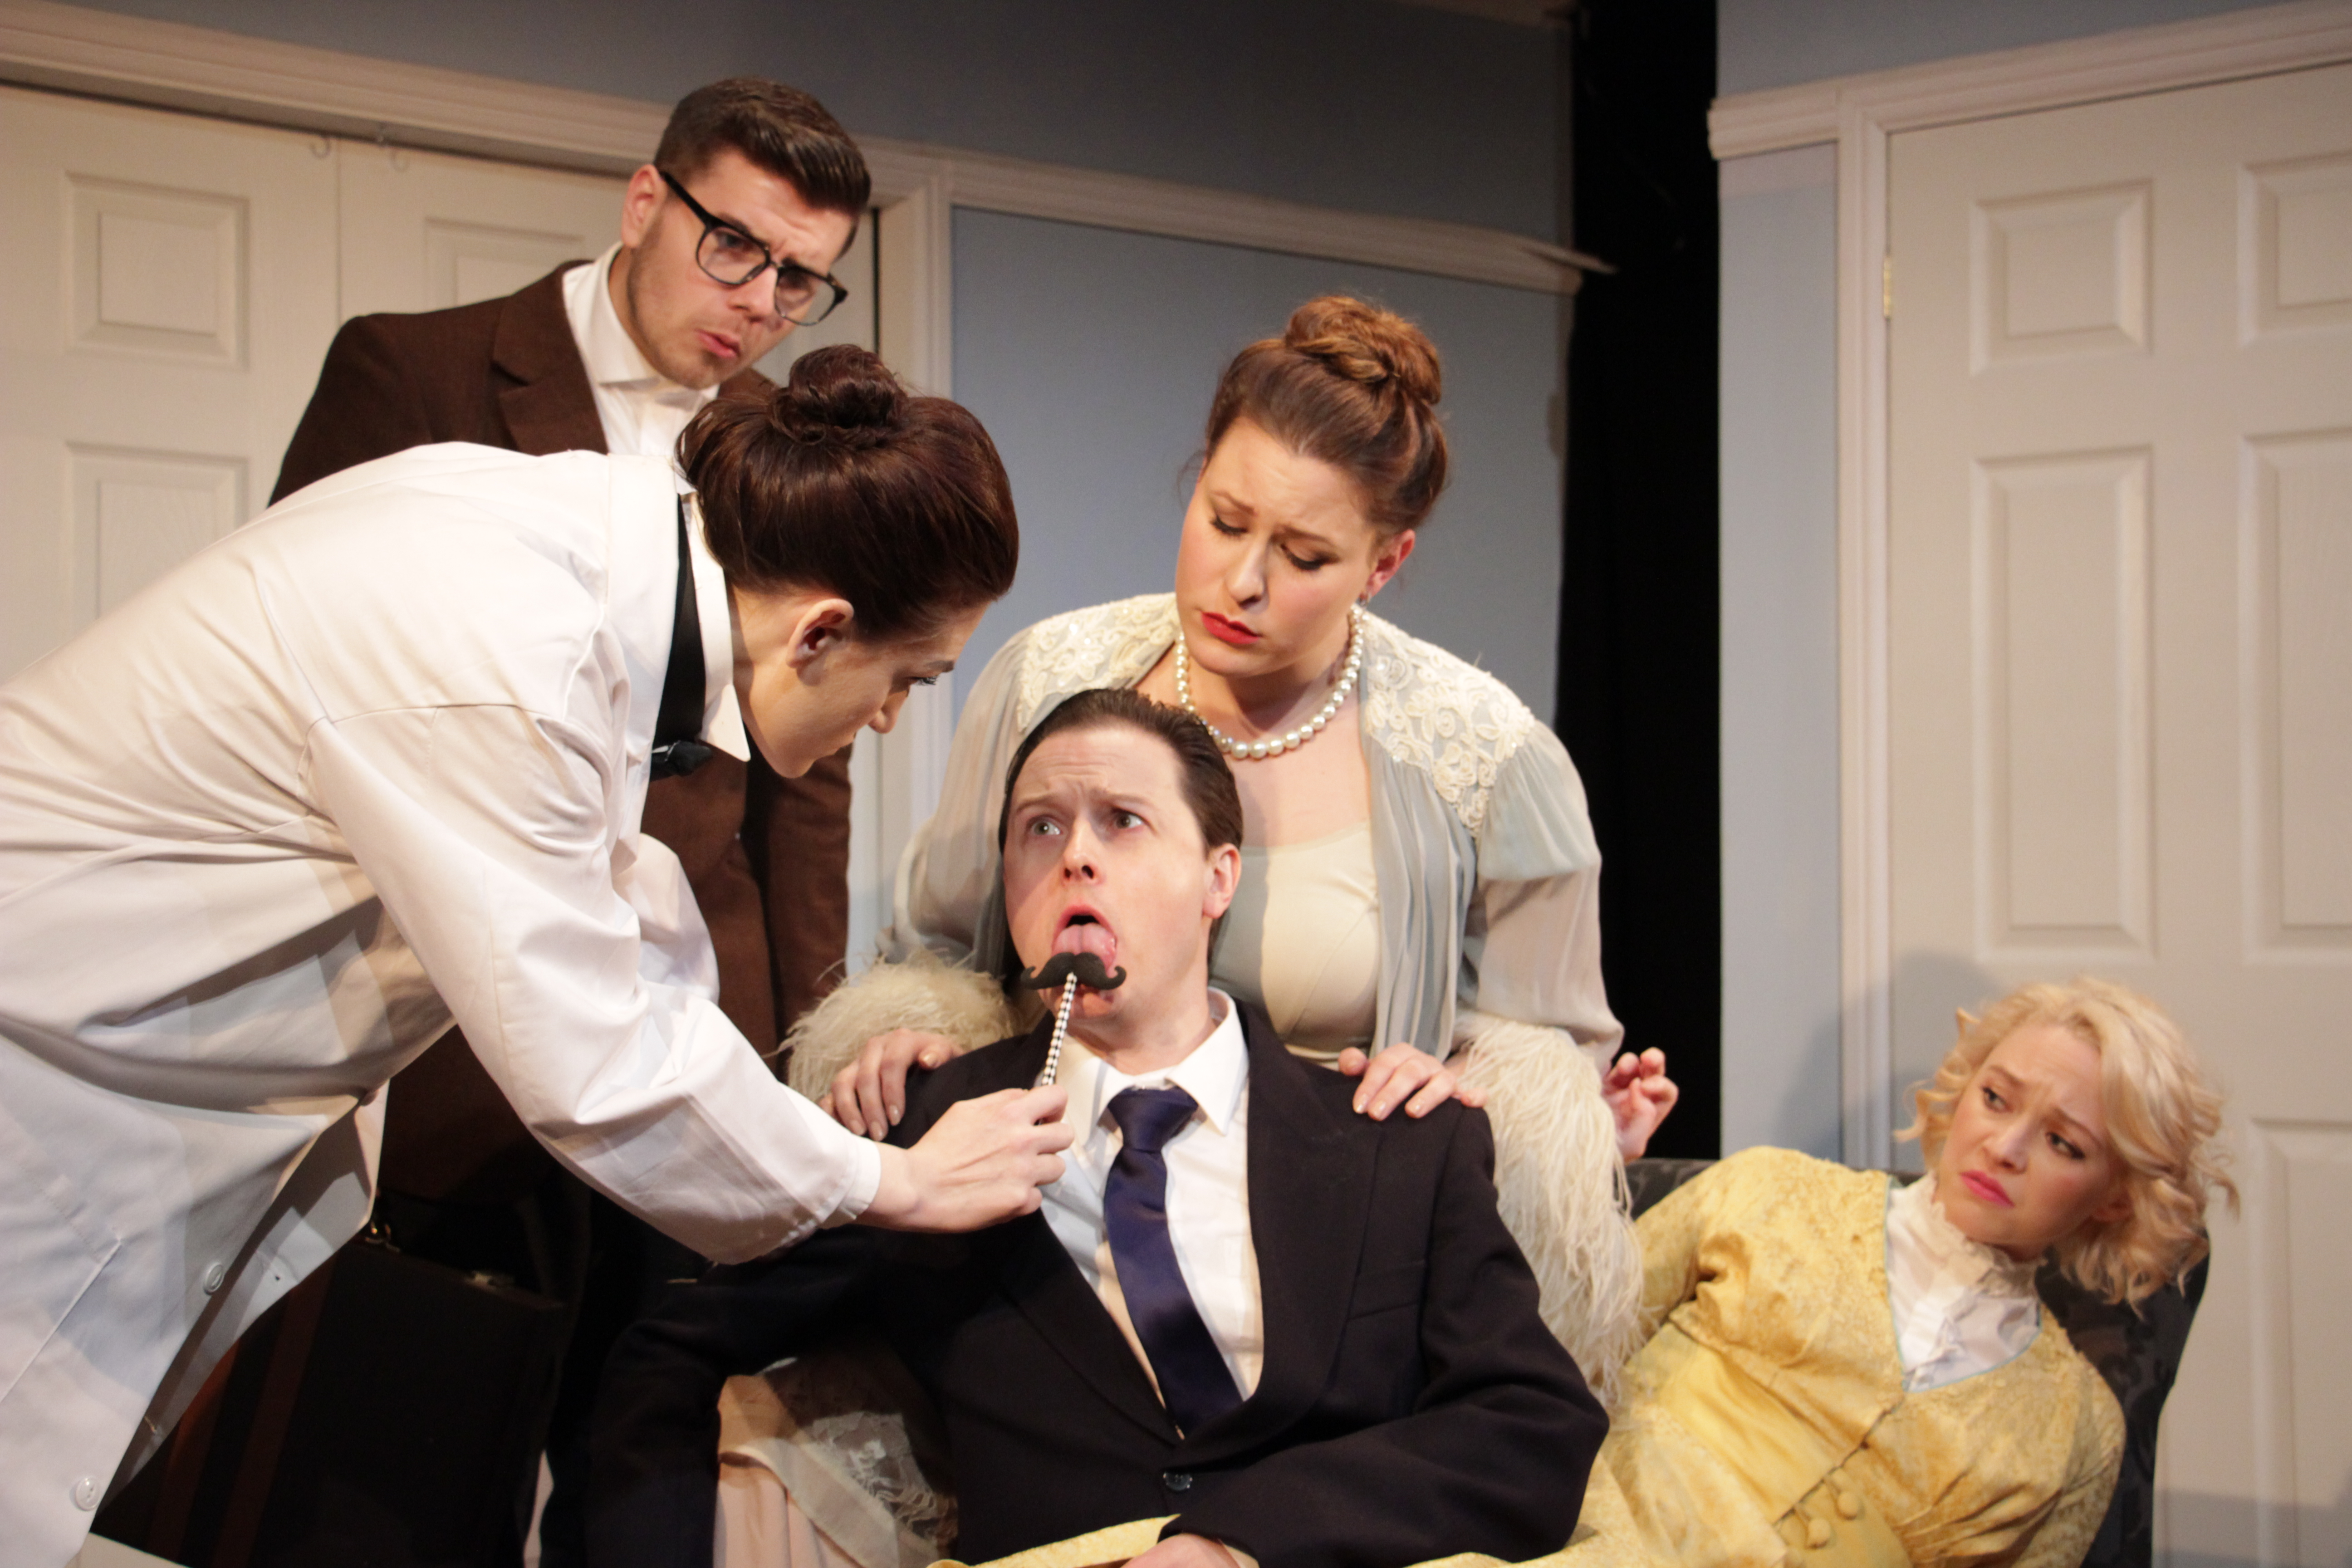 a review of the play a flea in her ear by georges feydeau A flea in her ear: a new version of georges feydeau's a flea in her ear is probably georges feydeau's most well-known work the play is a farce that examines.